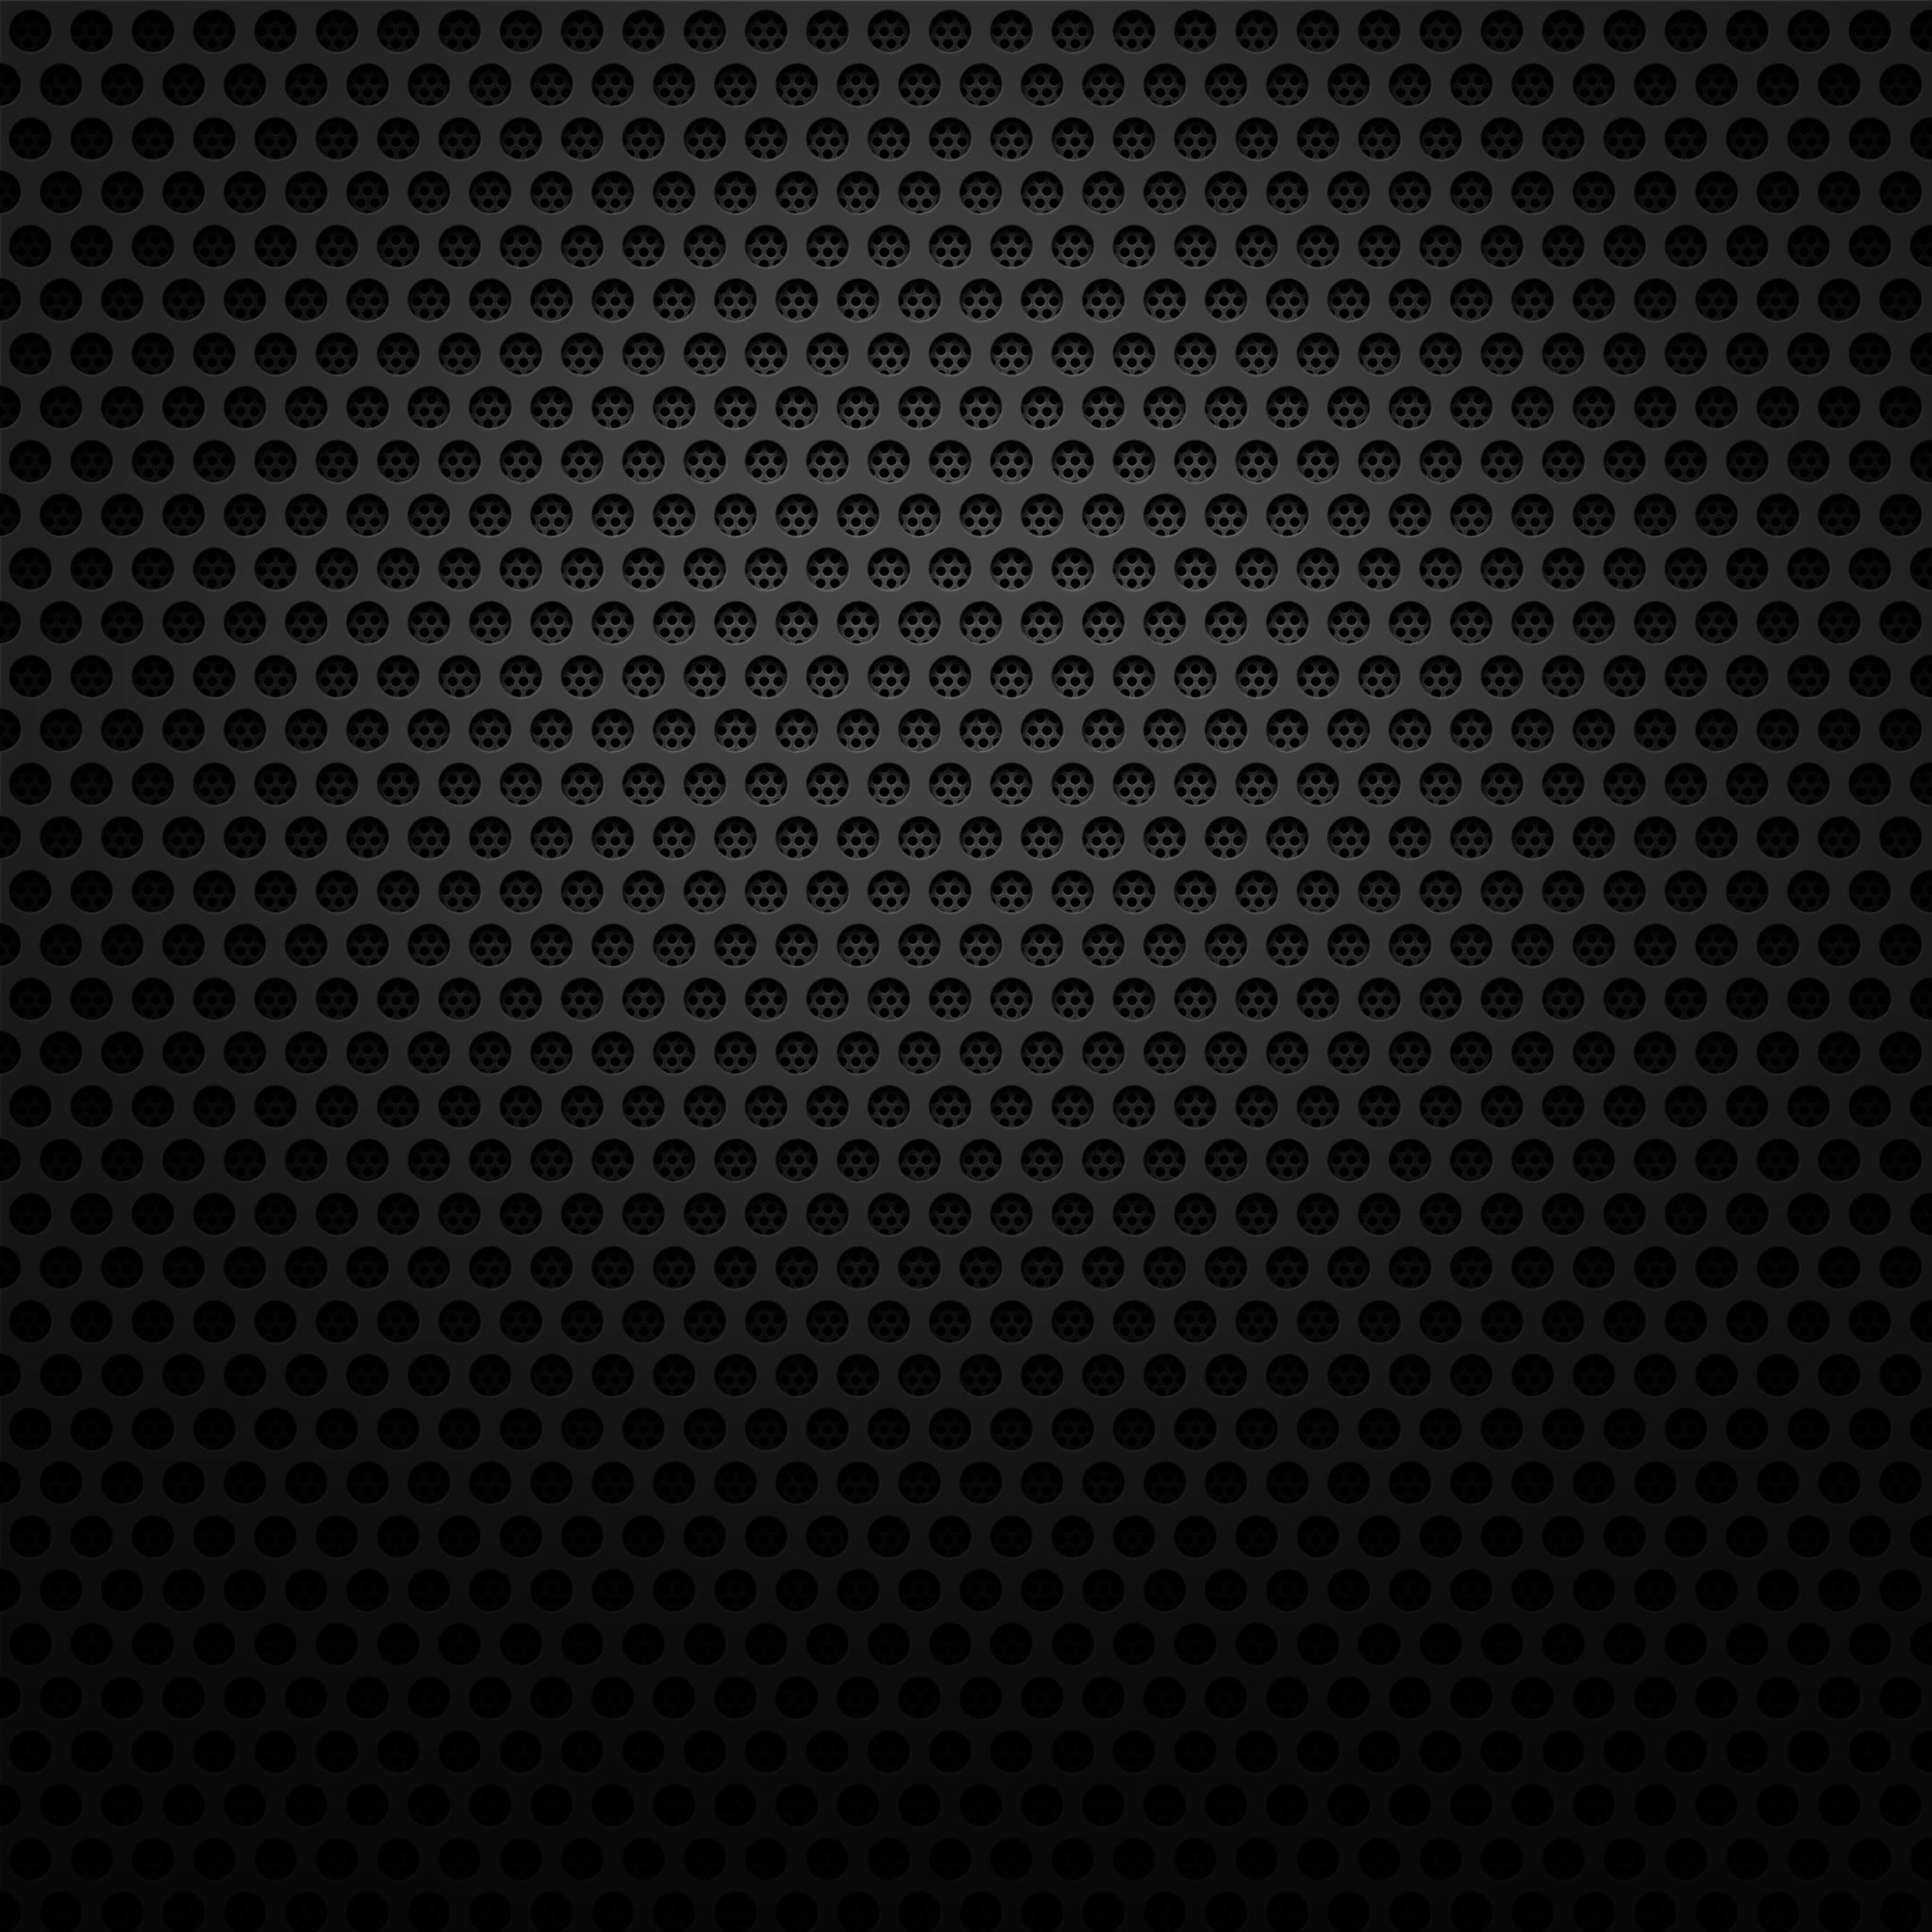 Aesthetic Black And White Wallpaper Ipad